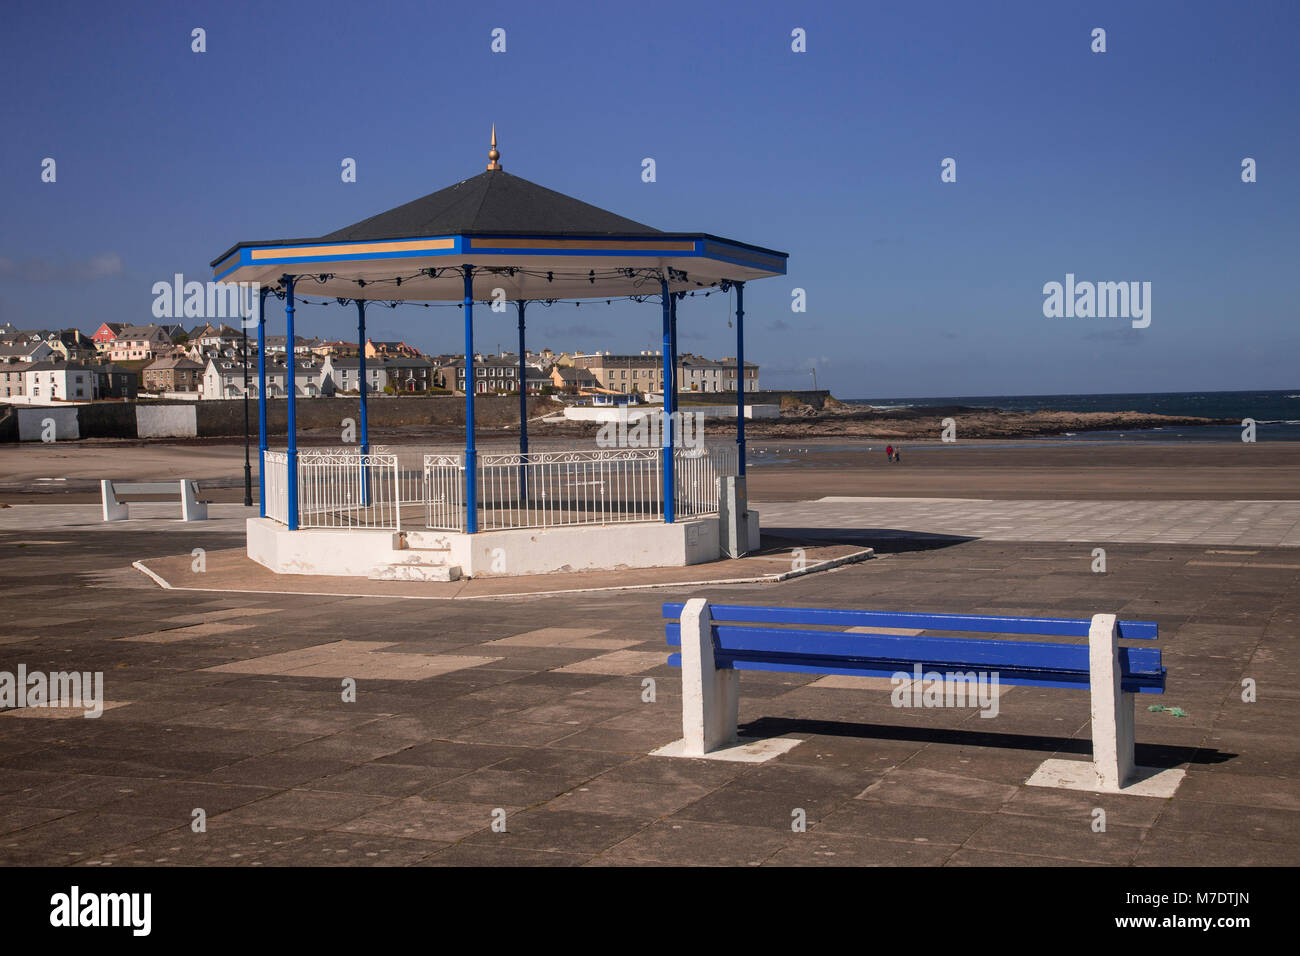 Bandstand on the promenade by the sea at Kilkee, Ireland - Stock Image